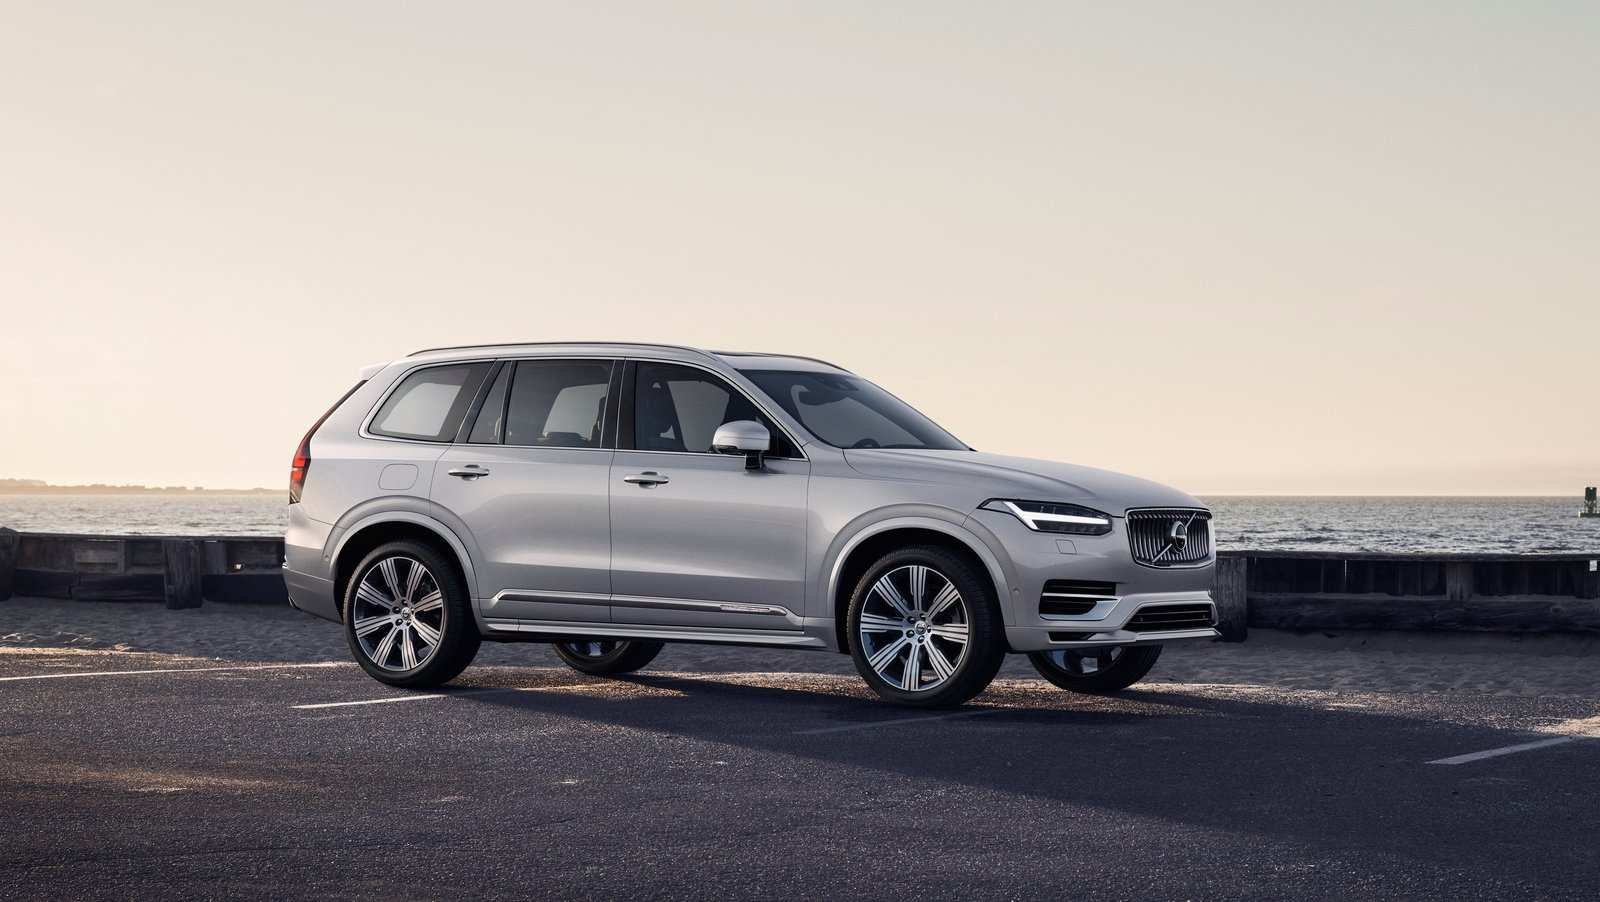 84 All New Volvo S90 2020 Facelift Picture for Volvo S90 2020 Facelift